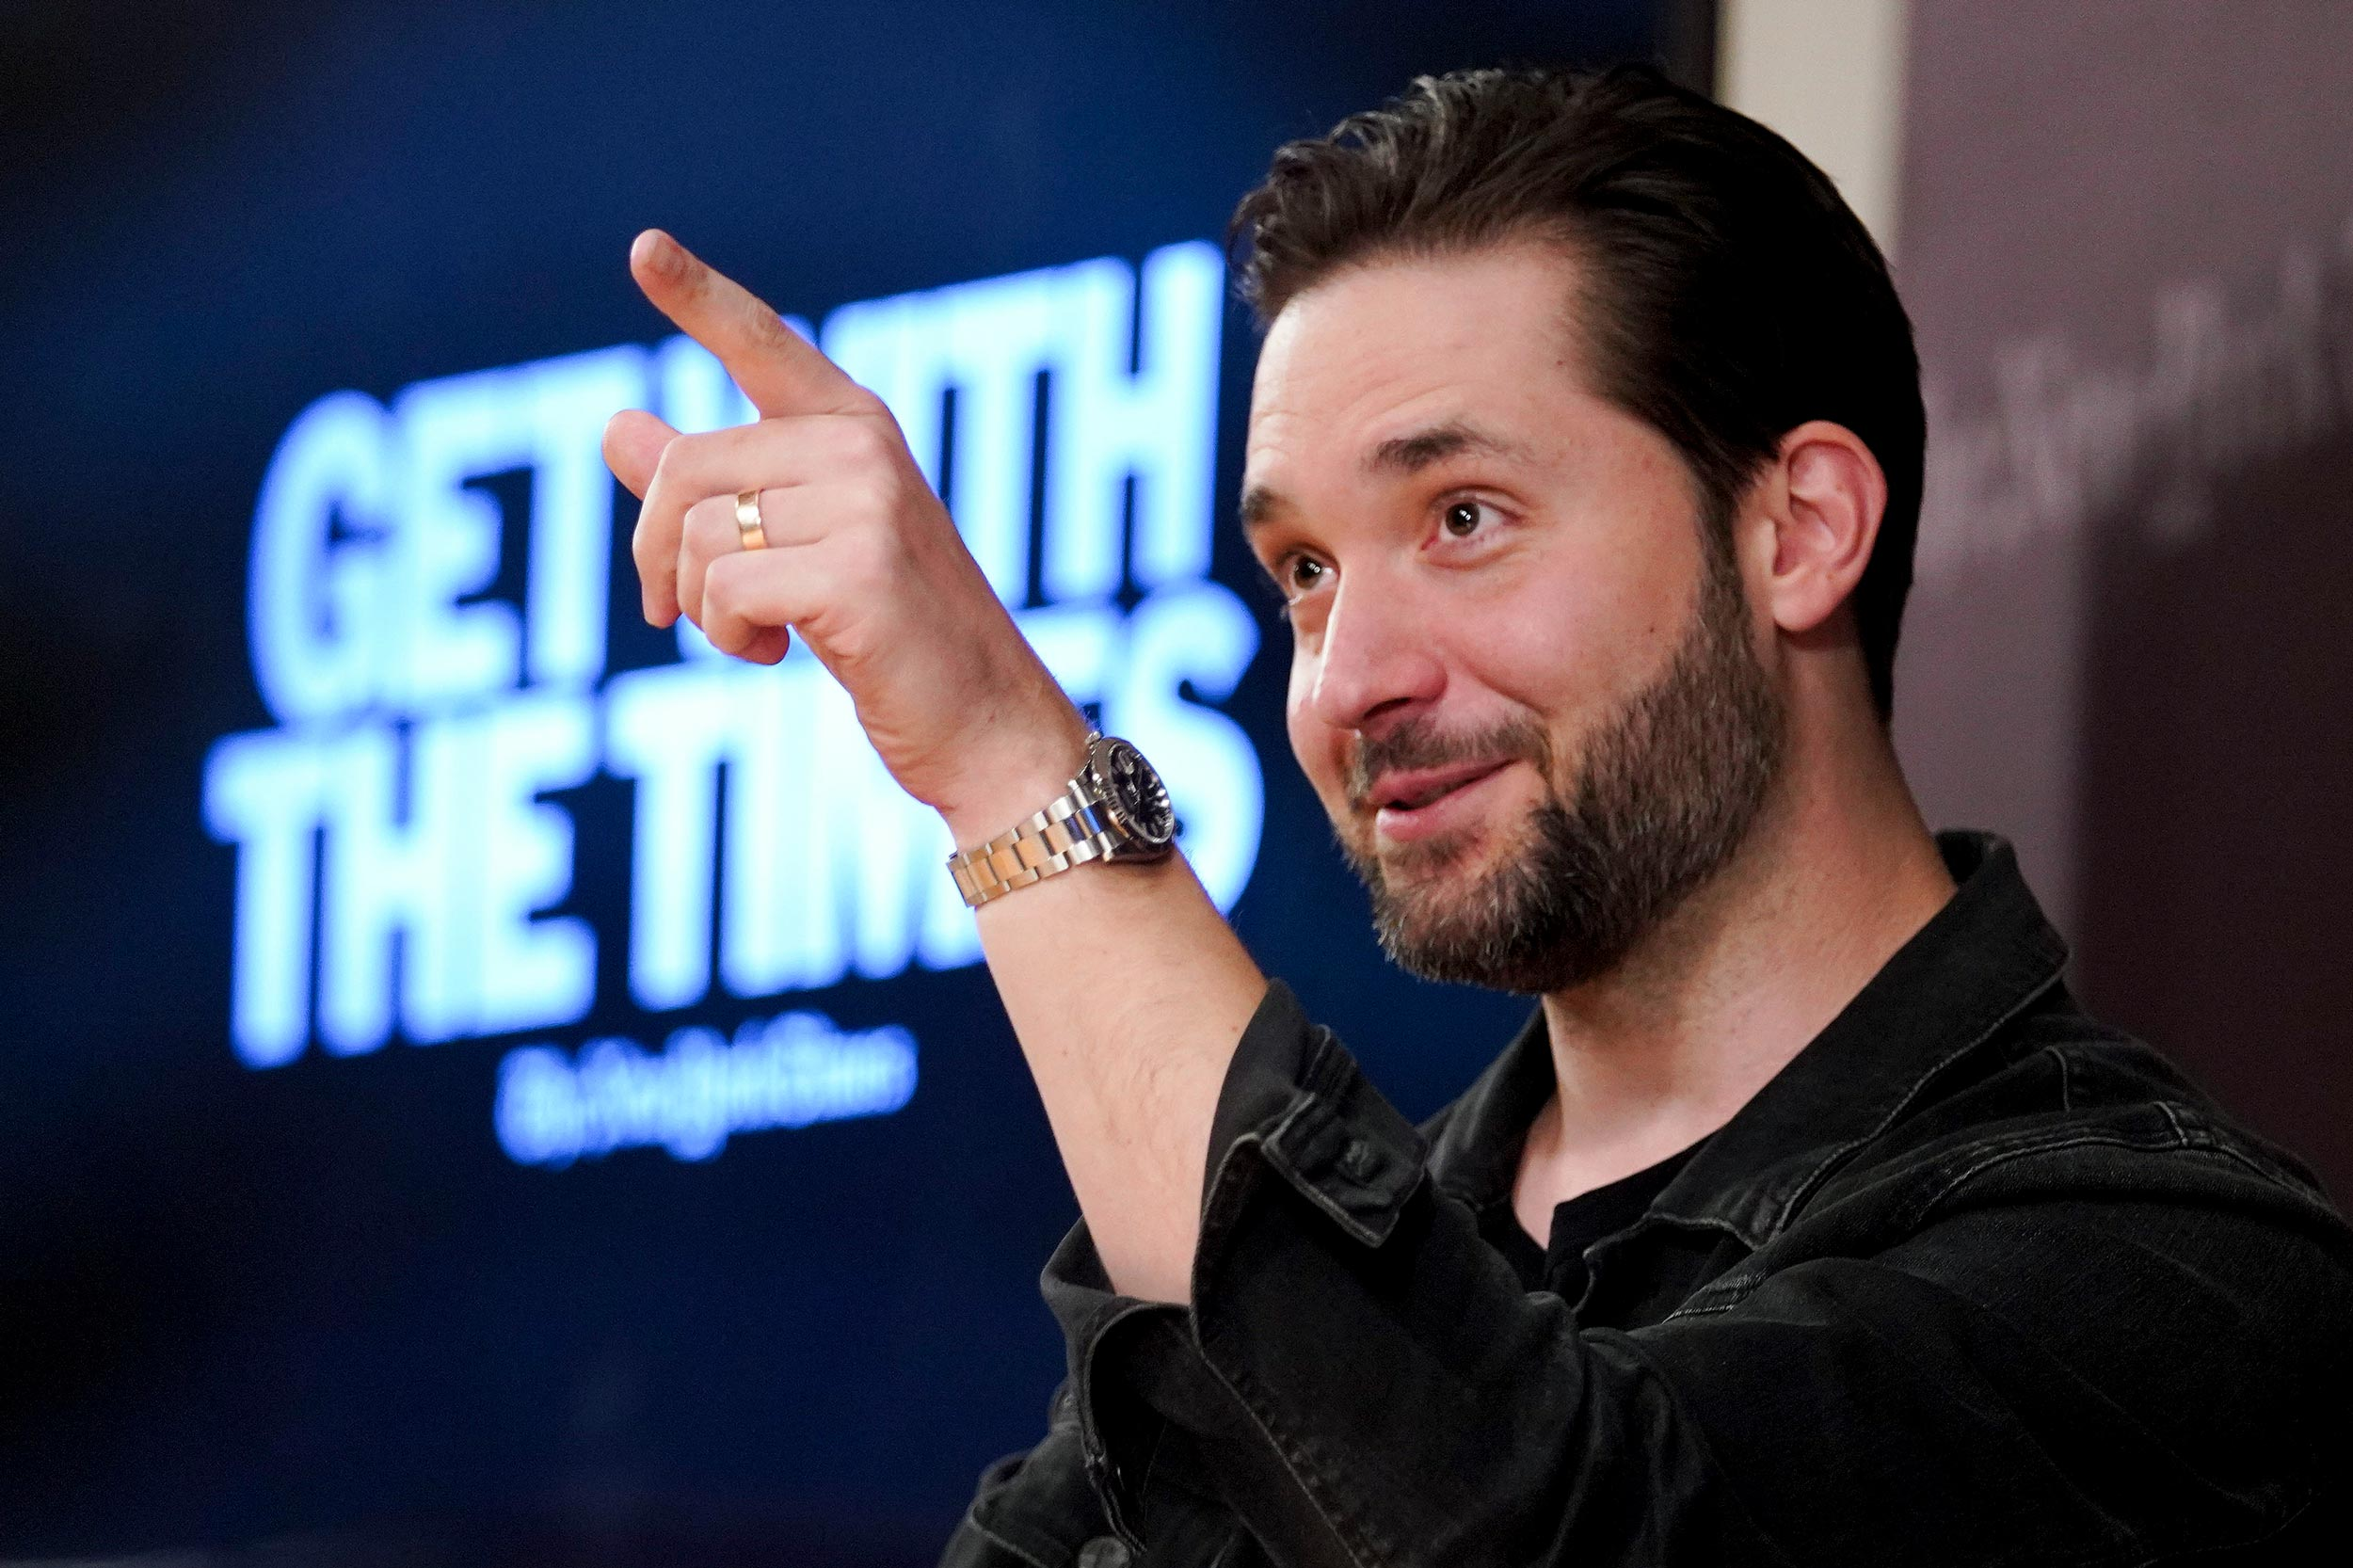 Alexis Ohanian graduated from UVA in 2005 with degrees from the McIntire School of Commerce and the College of Arts & Sciences.